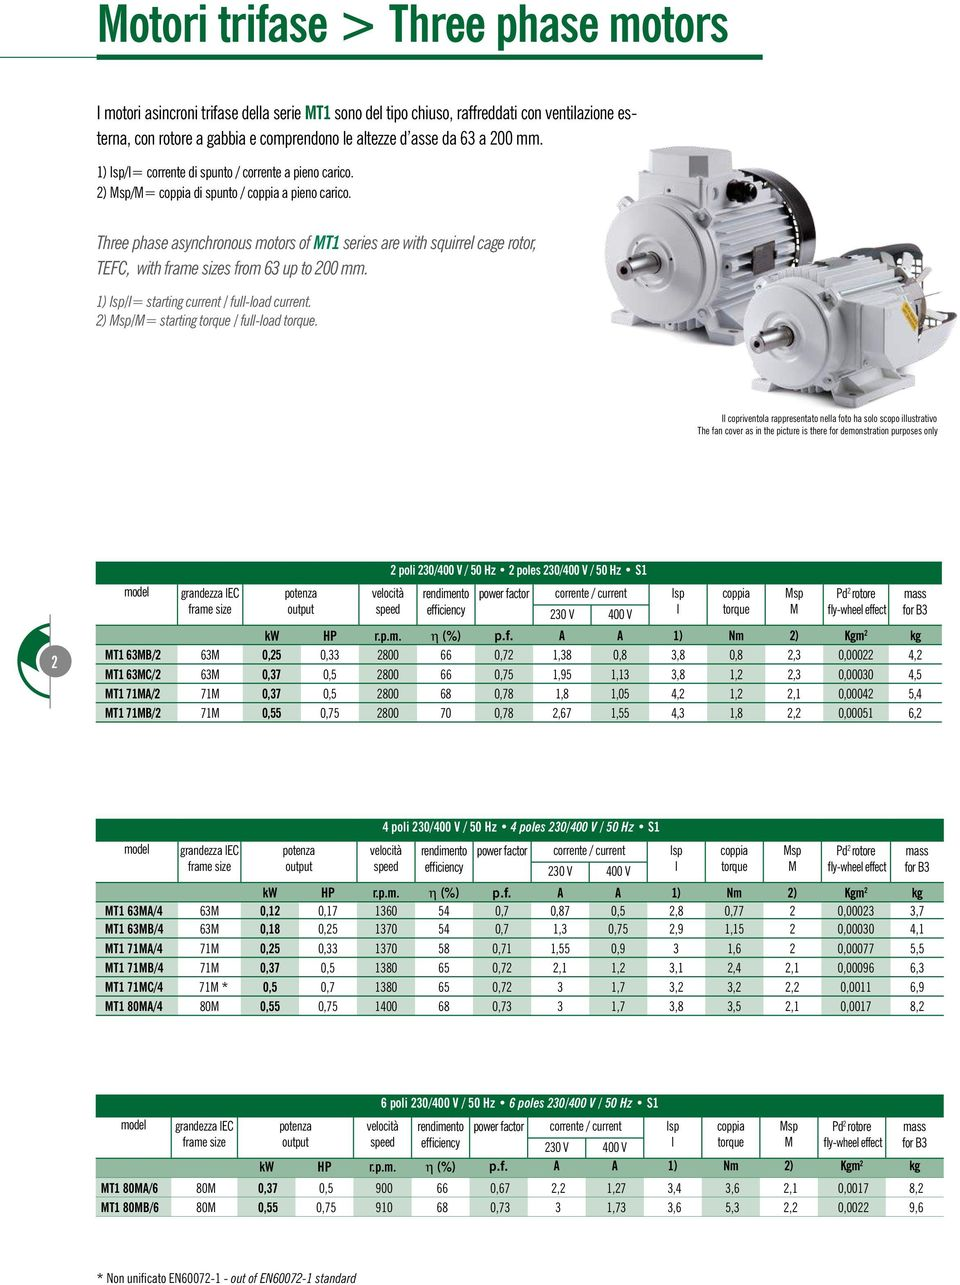 Three phase asynchronous motors of MT1 series are with squirrel cage rotor, TEFC, with s from 63 up to 200 mm. 1) Isp/I= starting current / full-load current.